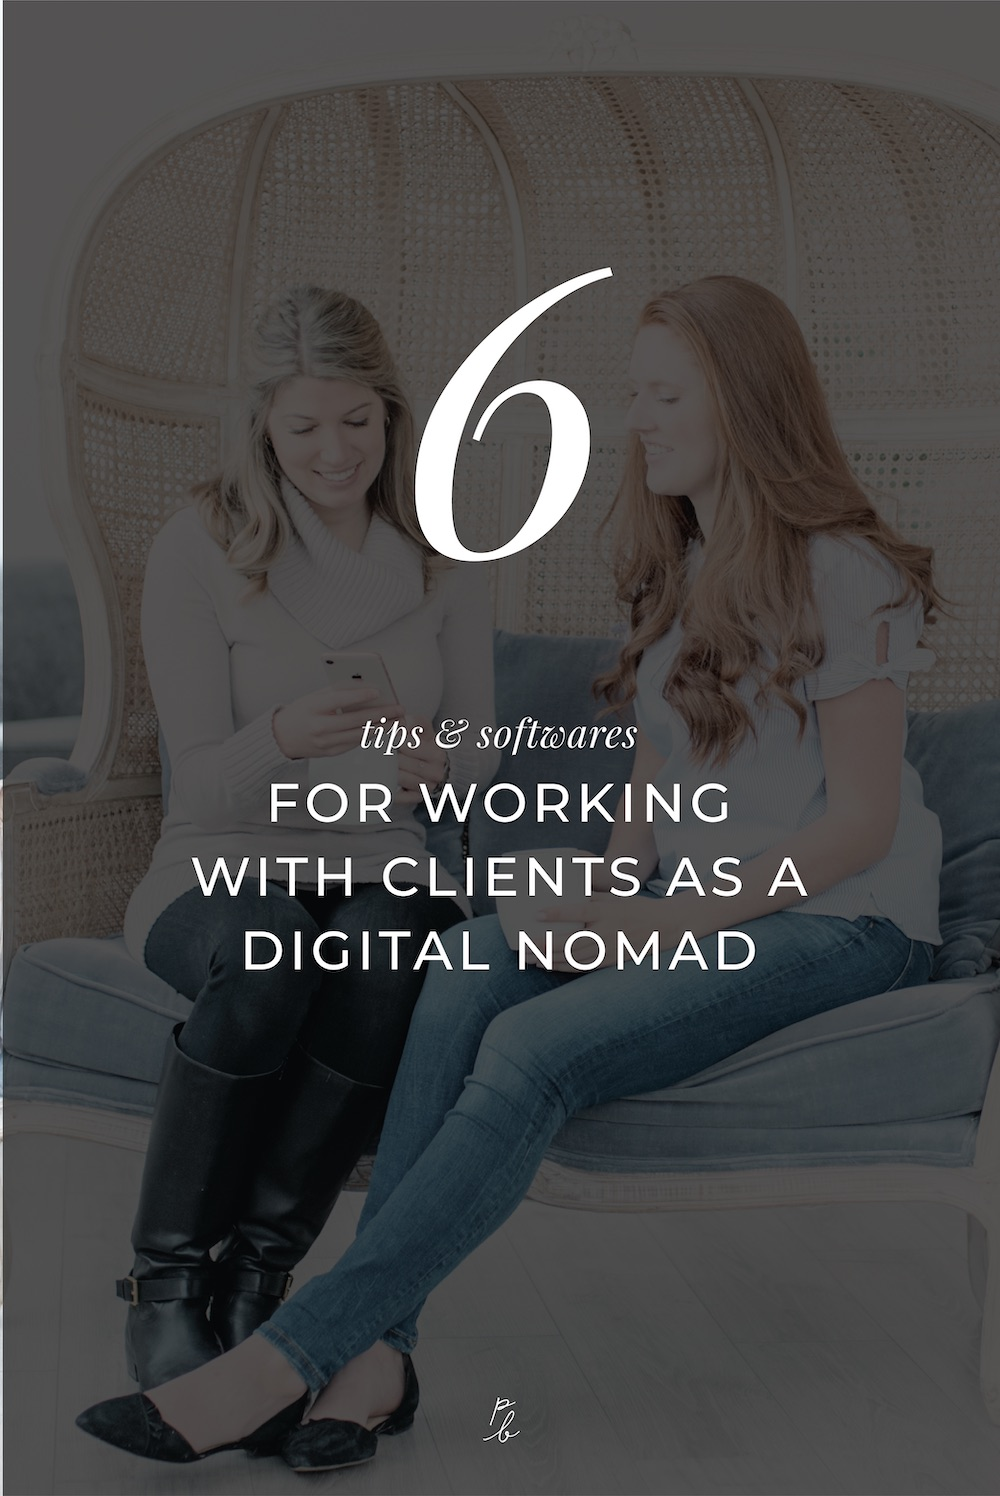 2-6 tips and softwares for working with clients as a digital nomad.jpg